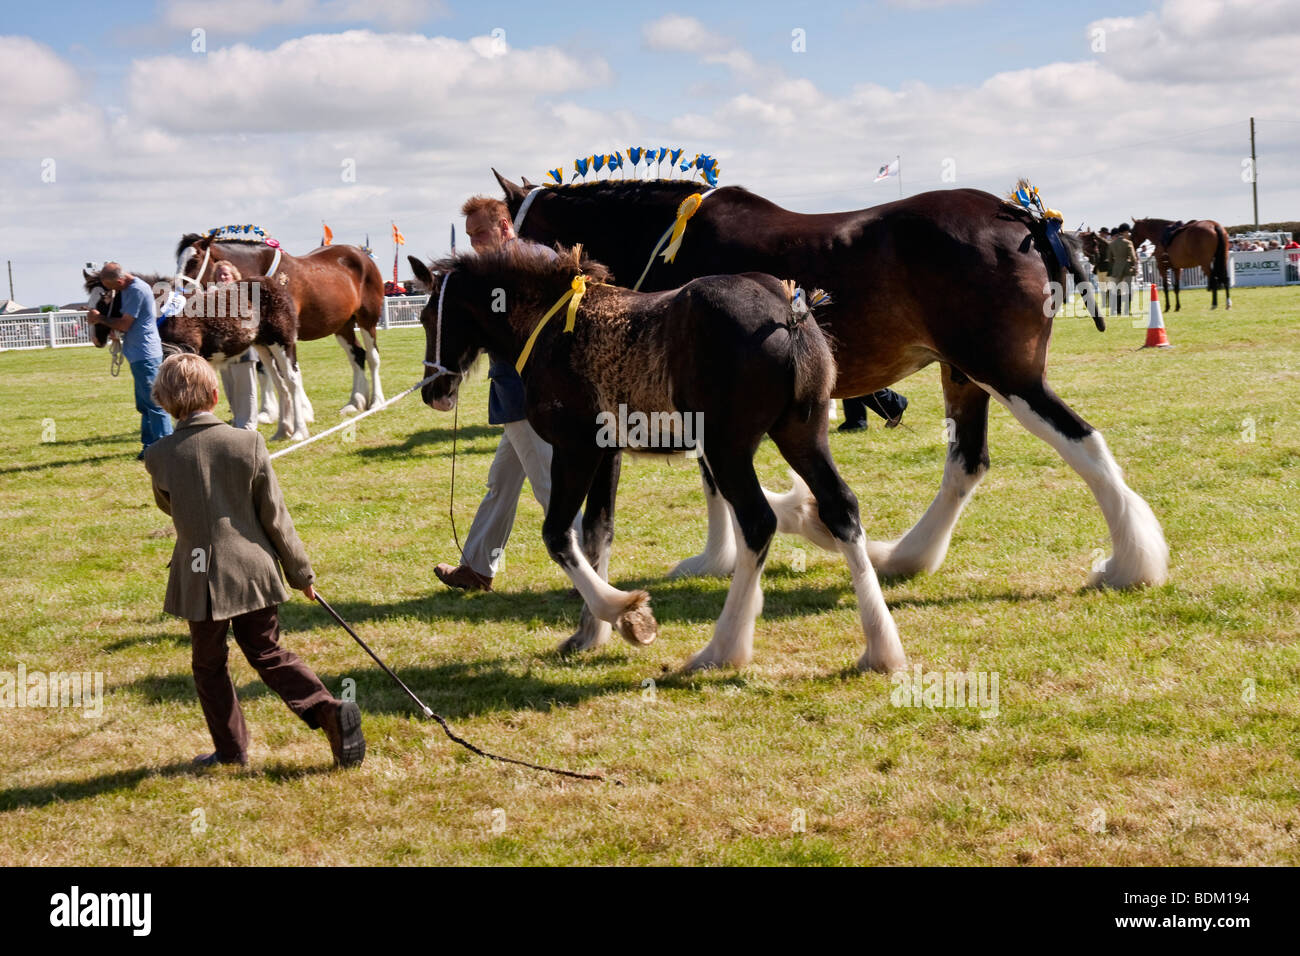 [shire horses] being judged at an agricultural show - Stock Image